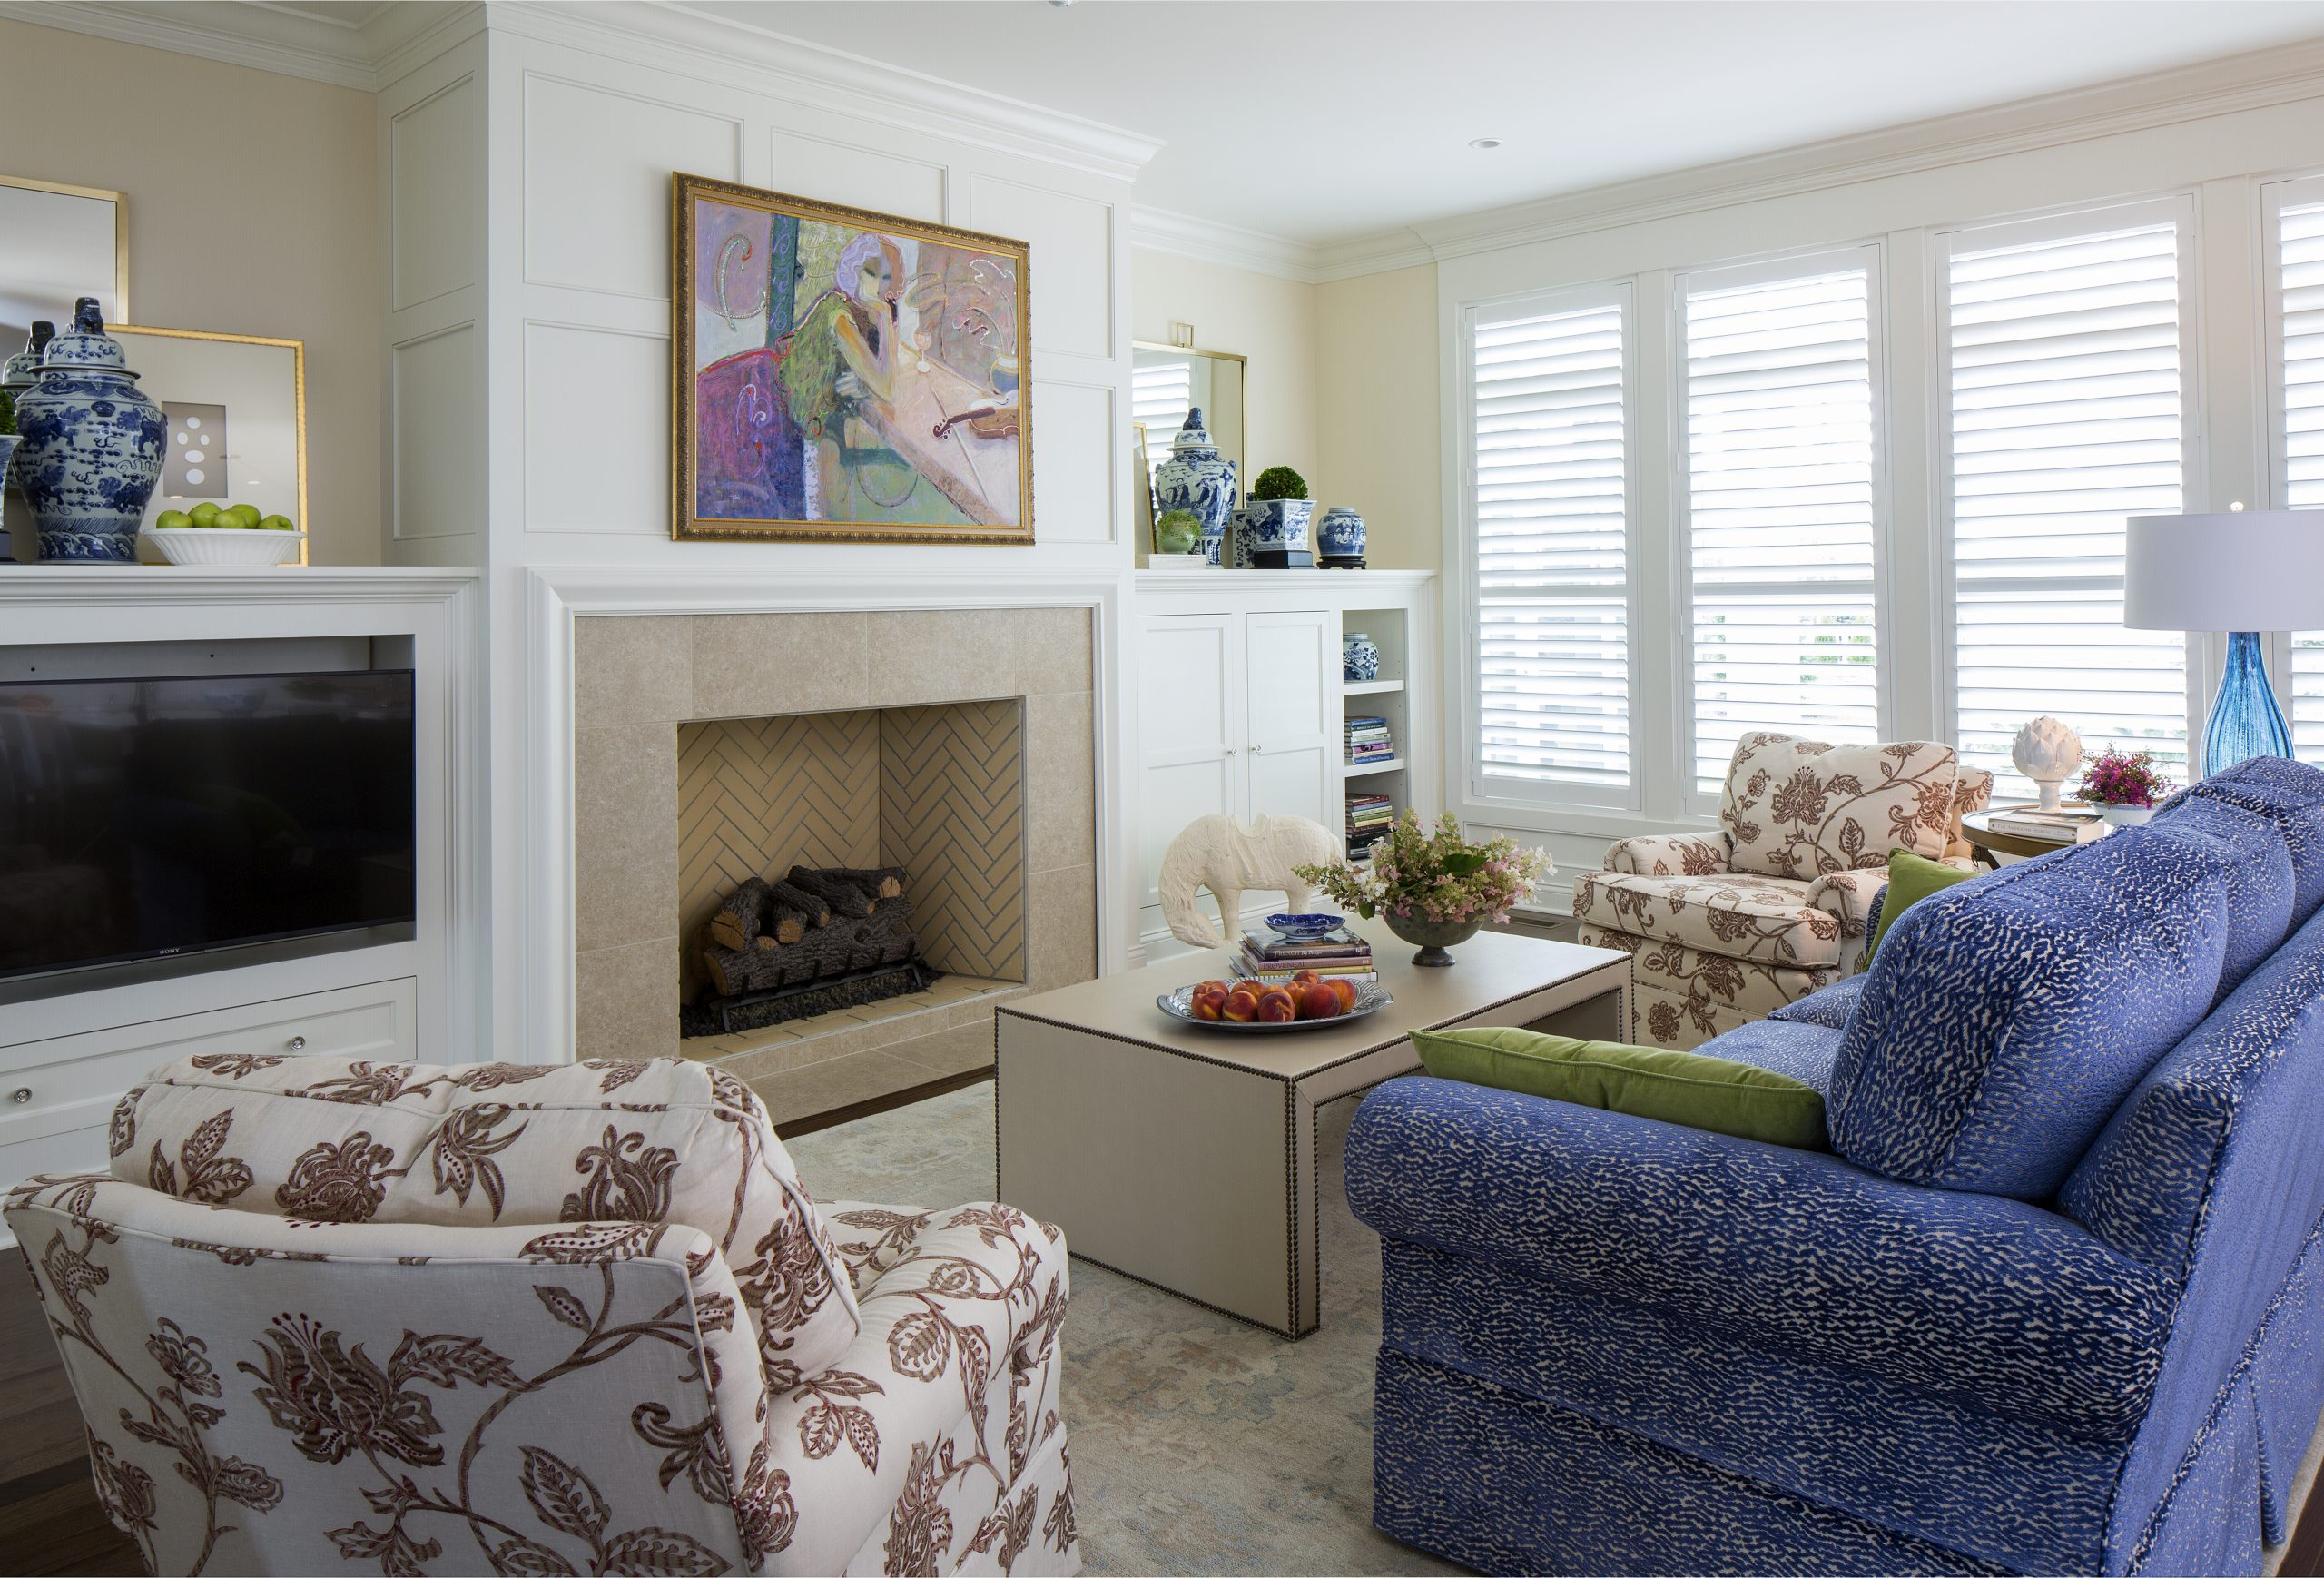 hoskins-interior-design-indianapolis-in-starting-an-art-collection-contempoarary-living-room-abstract-art